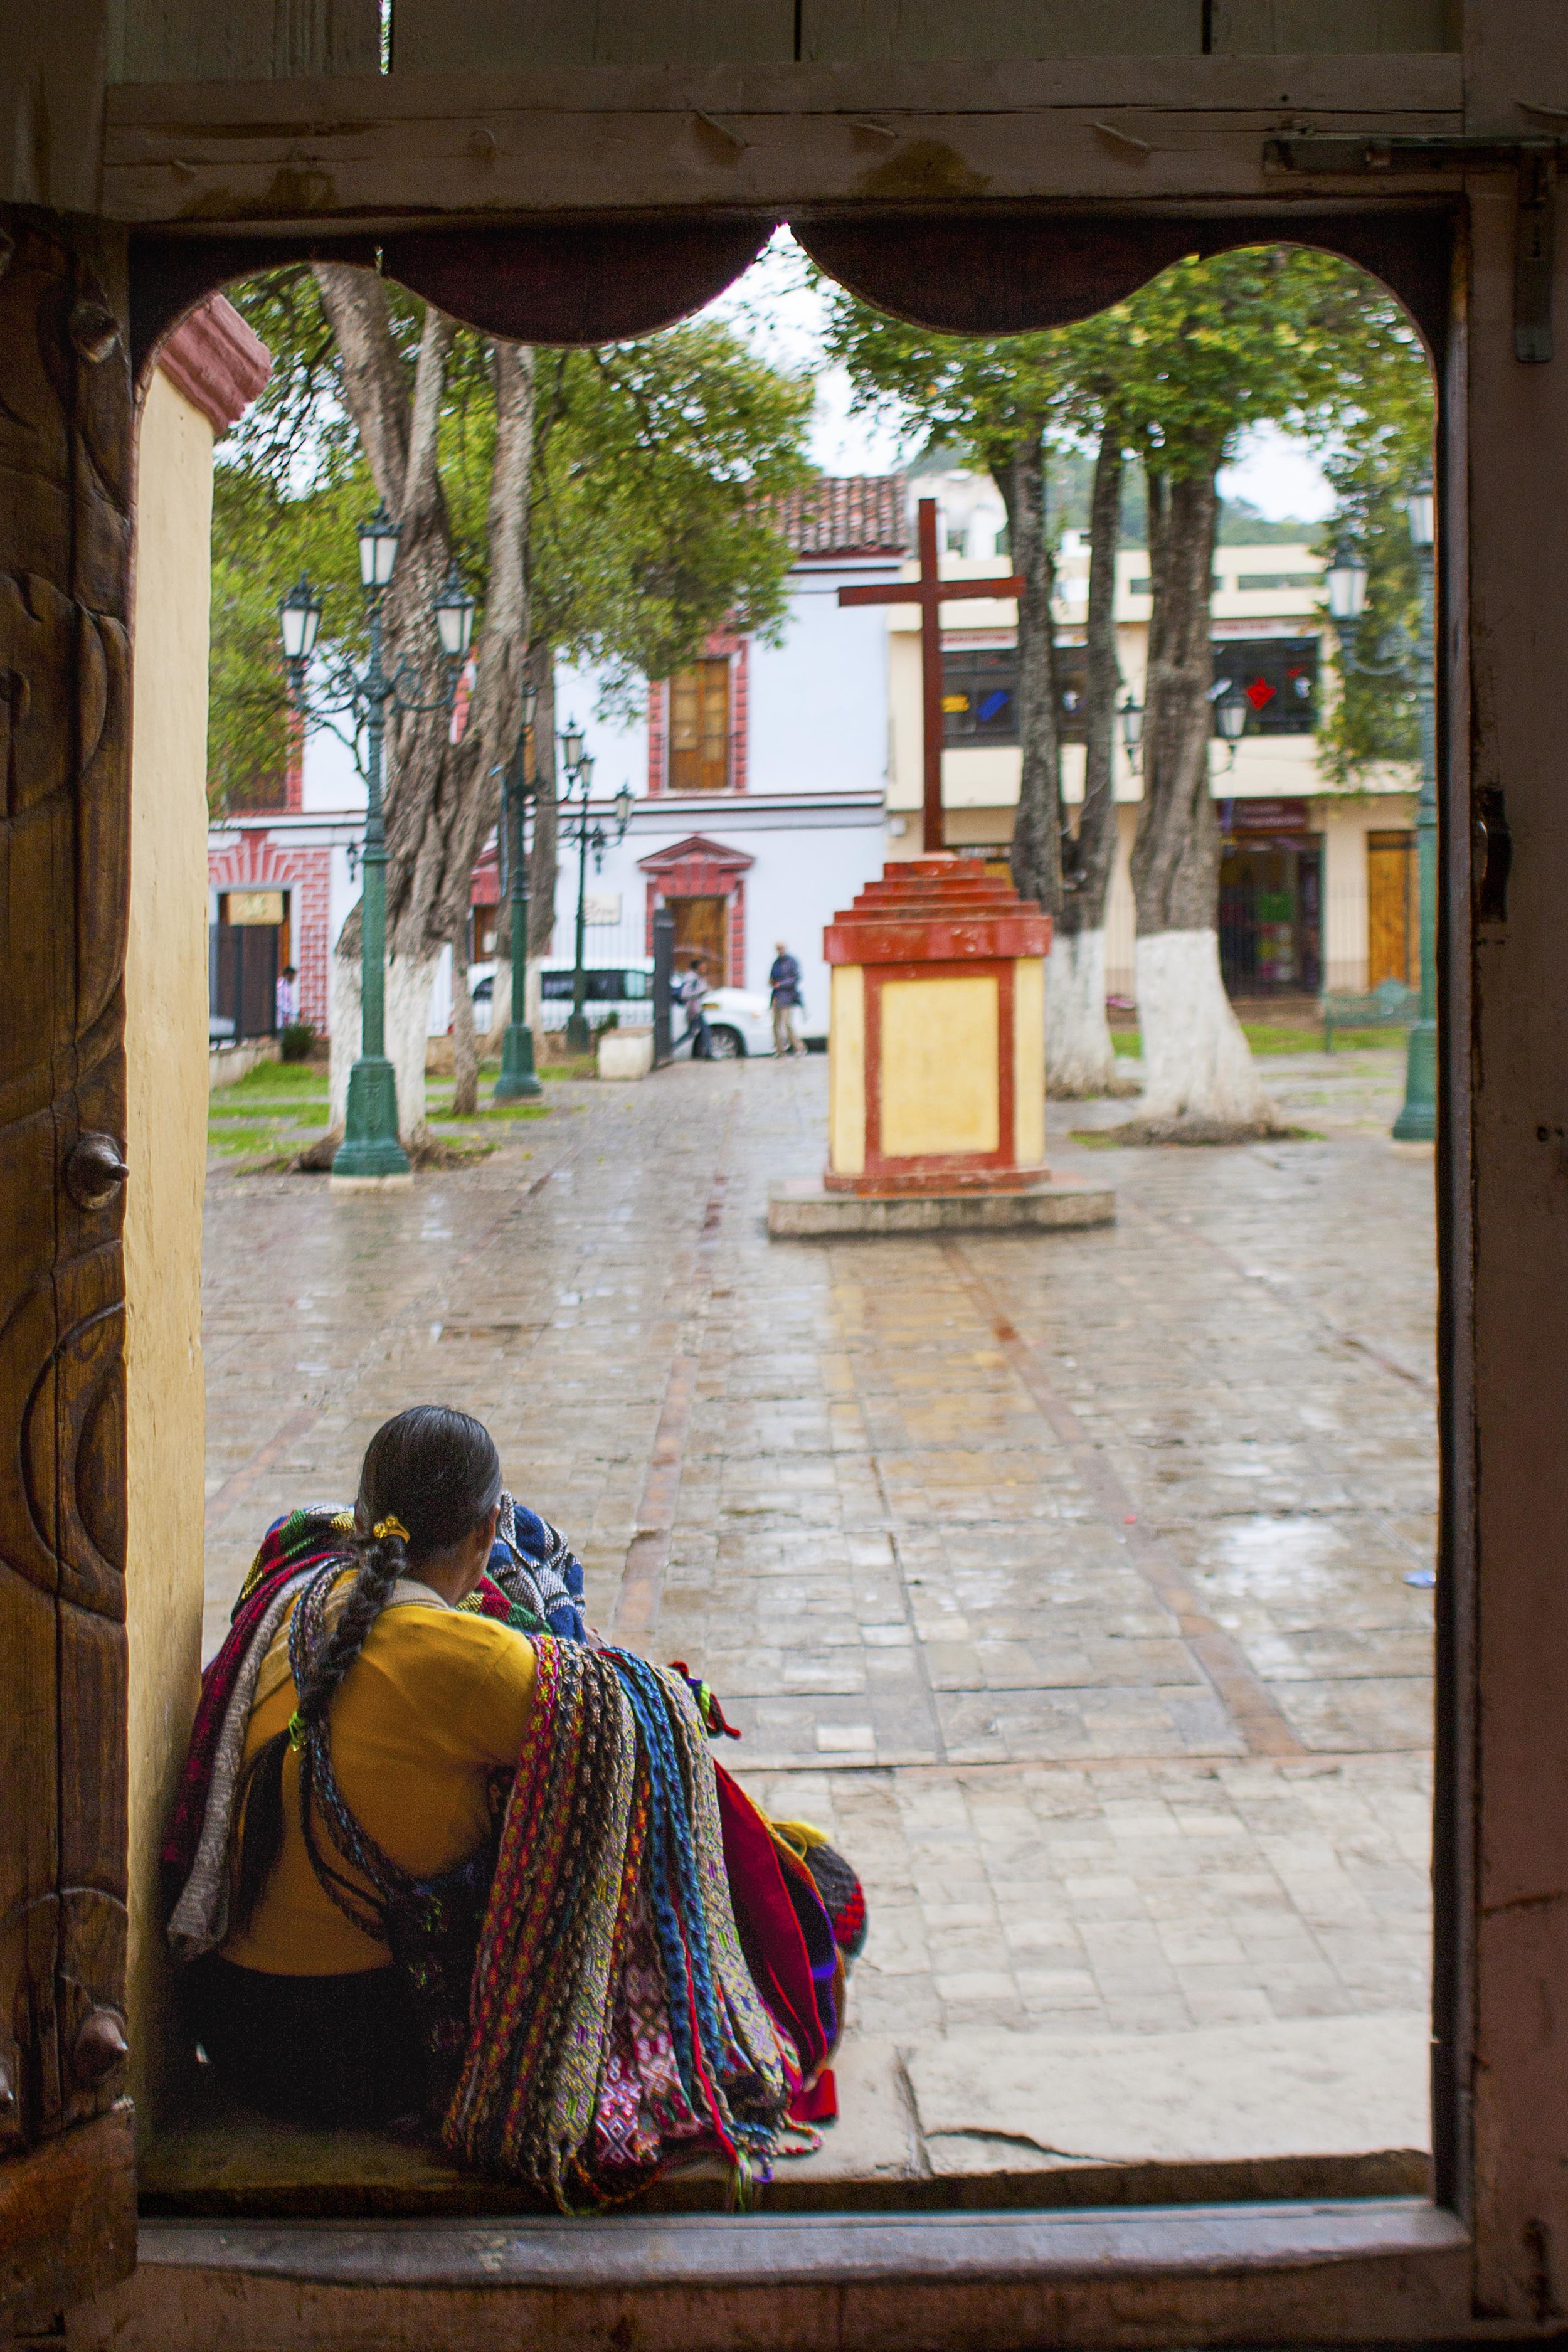 Day 127 - San Cristobal de las Casas, Chiapas, Mexico   We take a day off from tours and walk around the cobbled streets of San Cristobal to take it all in. It happened to rain so the usual hustle of the streets was missing. Here, a lady waits for the rain to stop at the steps of a church so she can go back to selling her crafts.